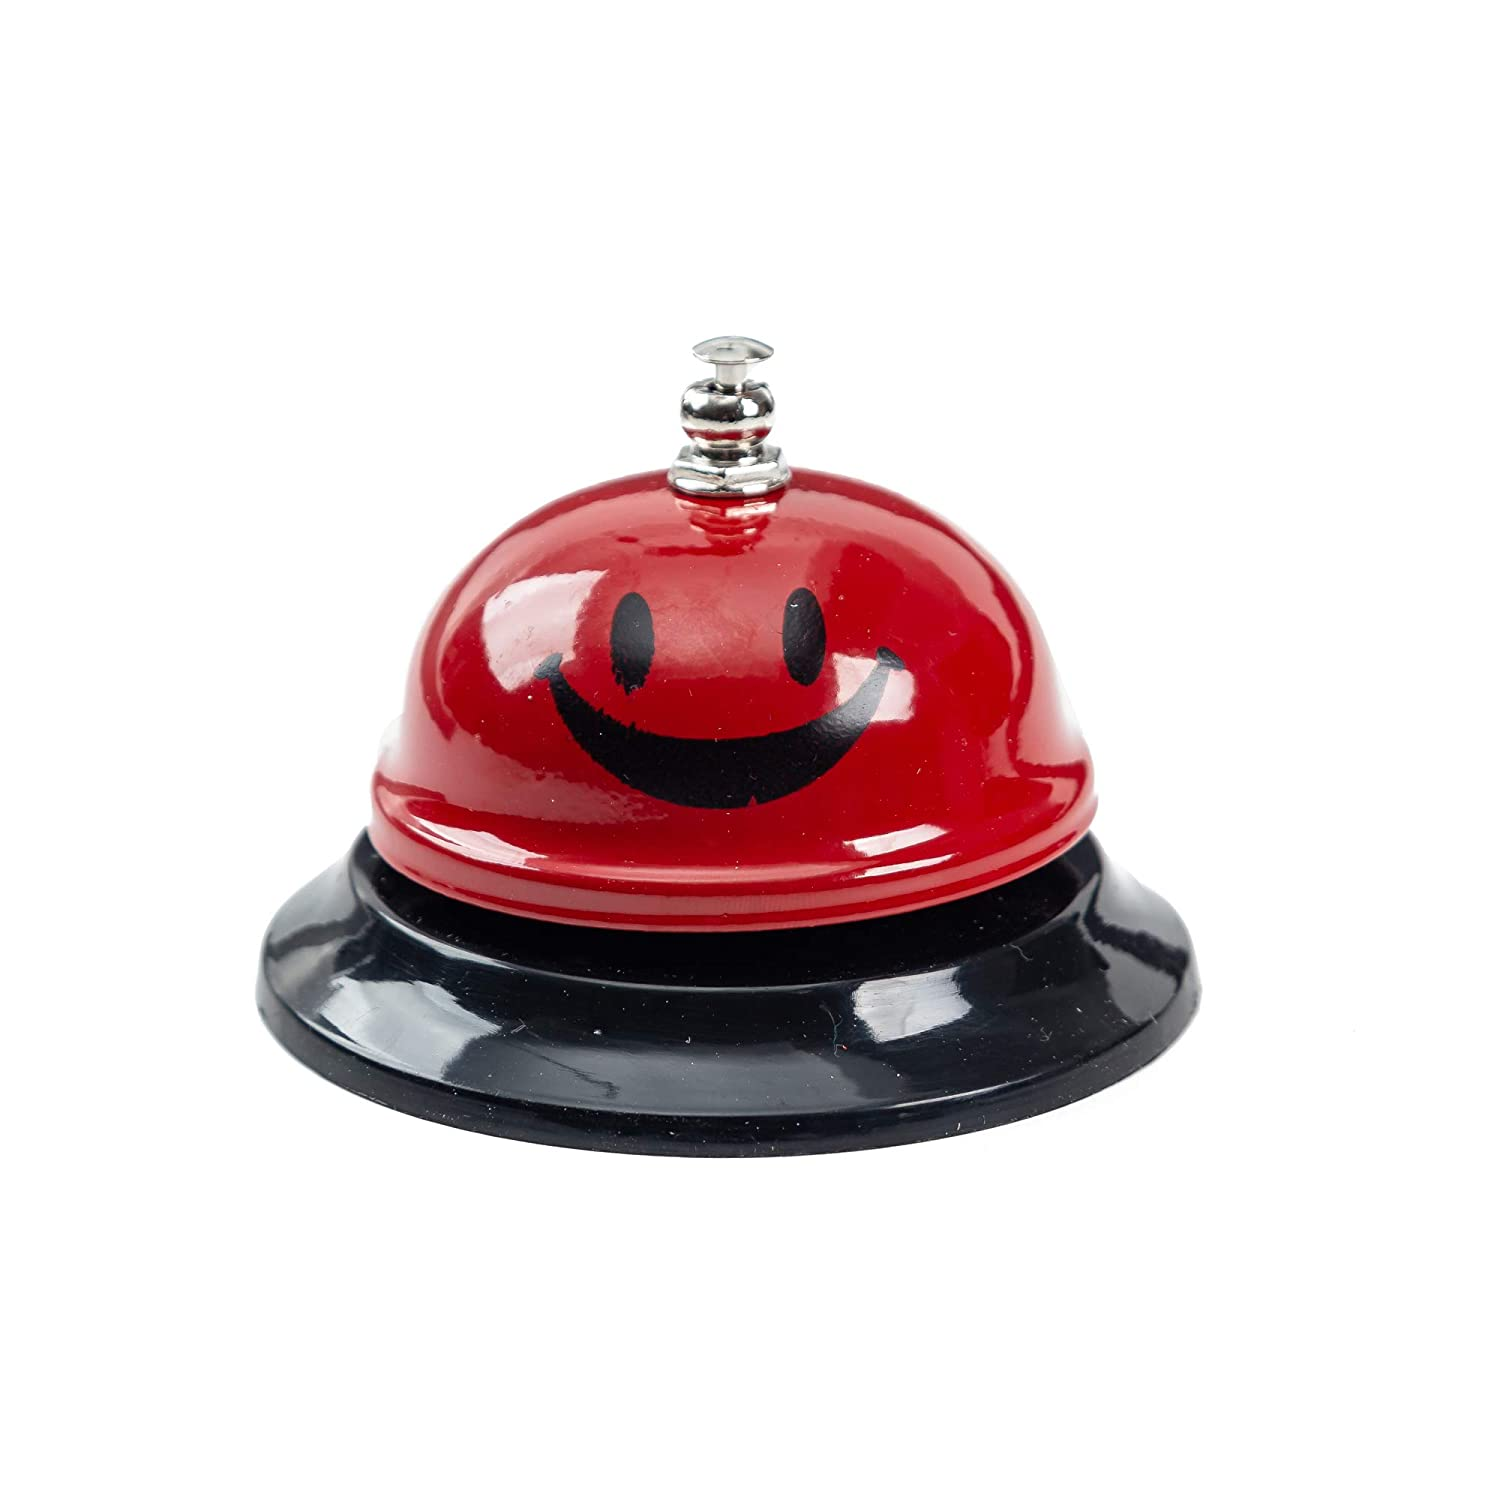 Silver Hotels Durable Pleasant Shops Dining Bell Call Bell 3.35 Inch Diameter Suitable for Hospitals,Schools,Restaurants Customer Service Call Bell for Elderly.Small Desk Bell